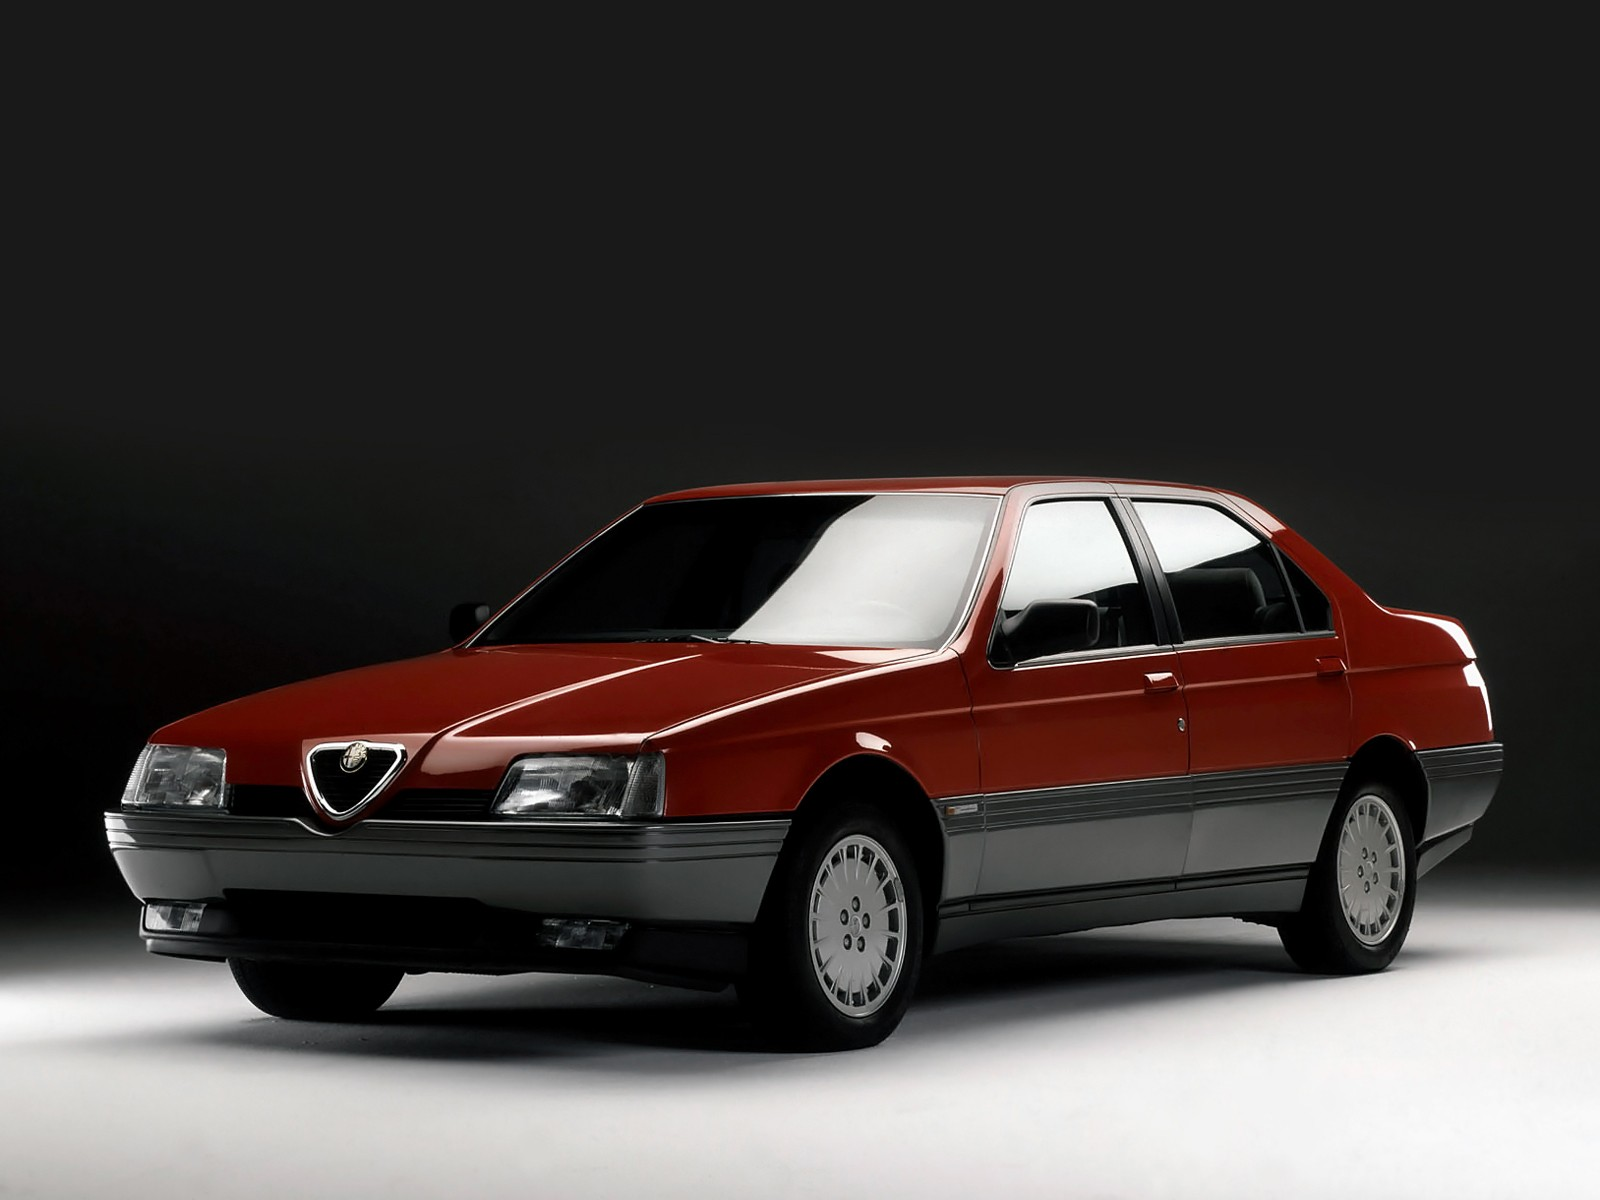 alfa romeo 164 specs 1988 1989 1990 1991 1992 1993. Black Bedroom Furniture Sets. Home Design Ideas